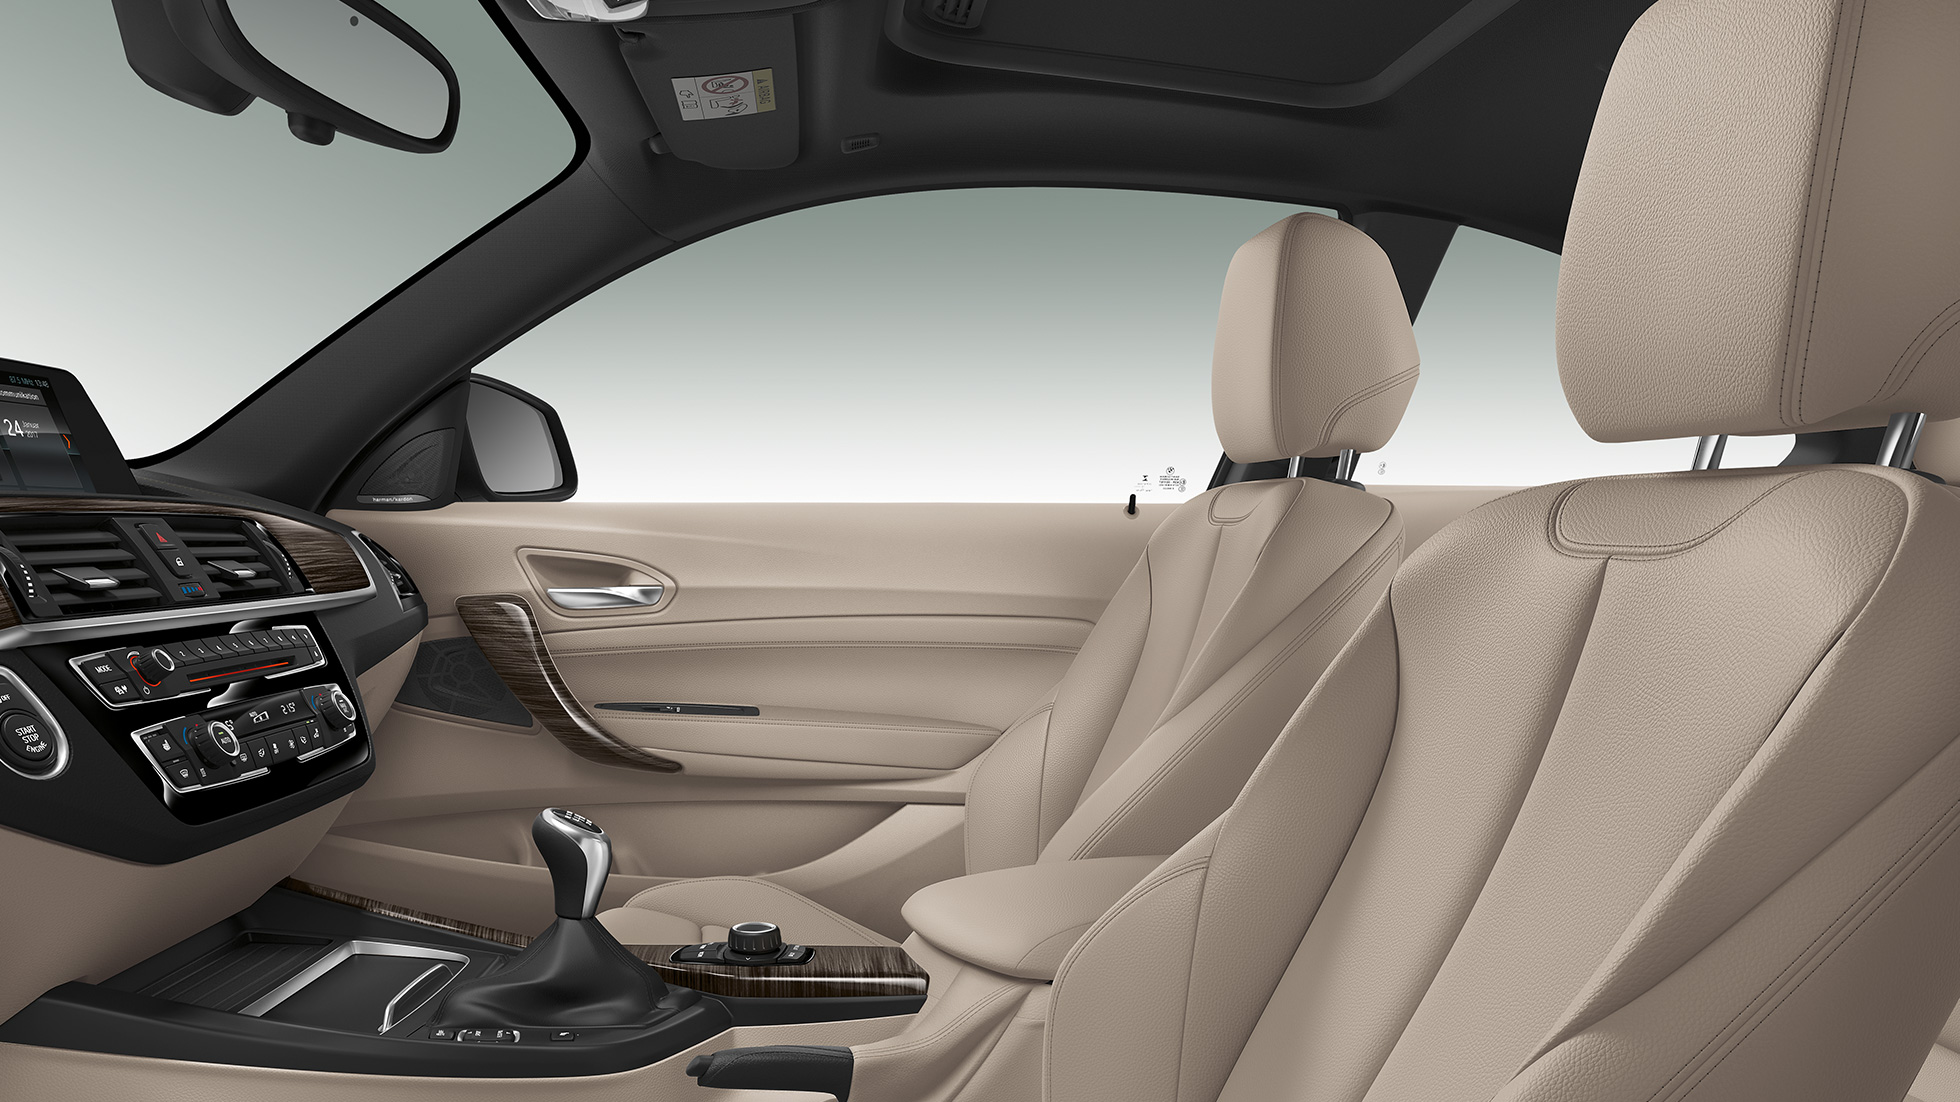 BMW Serie 2 Coupé, interior del Modelo Luxury Line